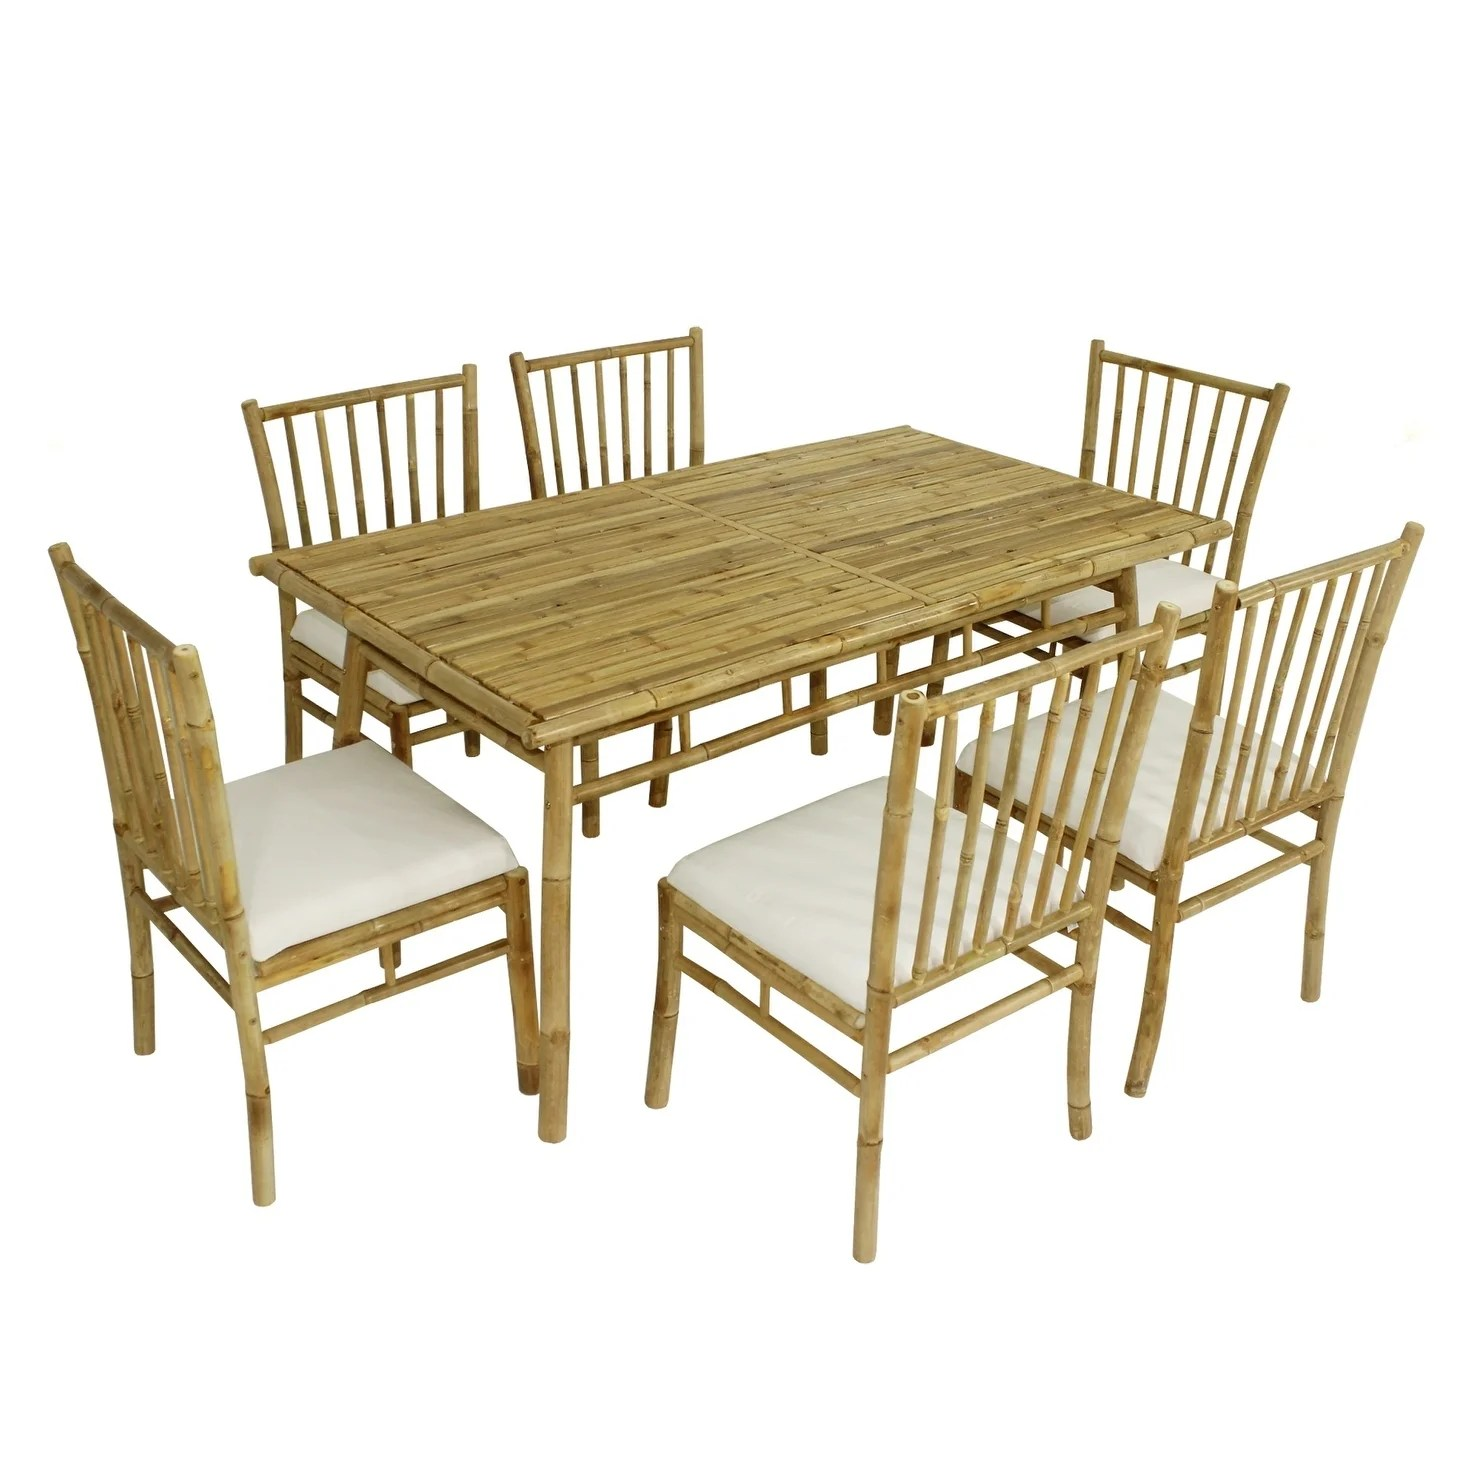 Bamboo Chairs Dining Set Of 6 White Bamboo Chairs And Large Rectangular Table